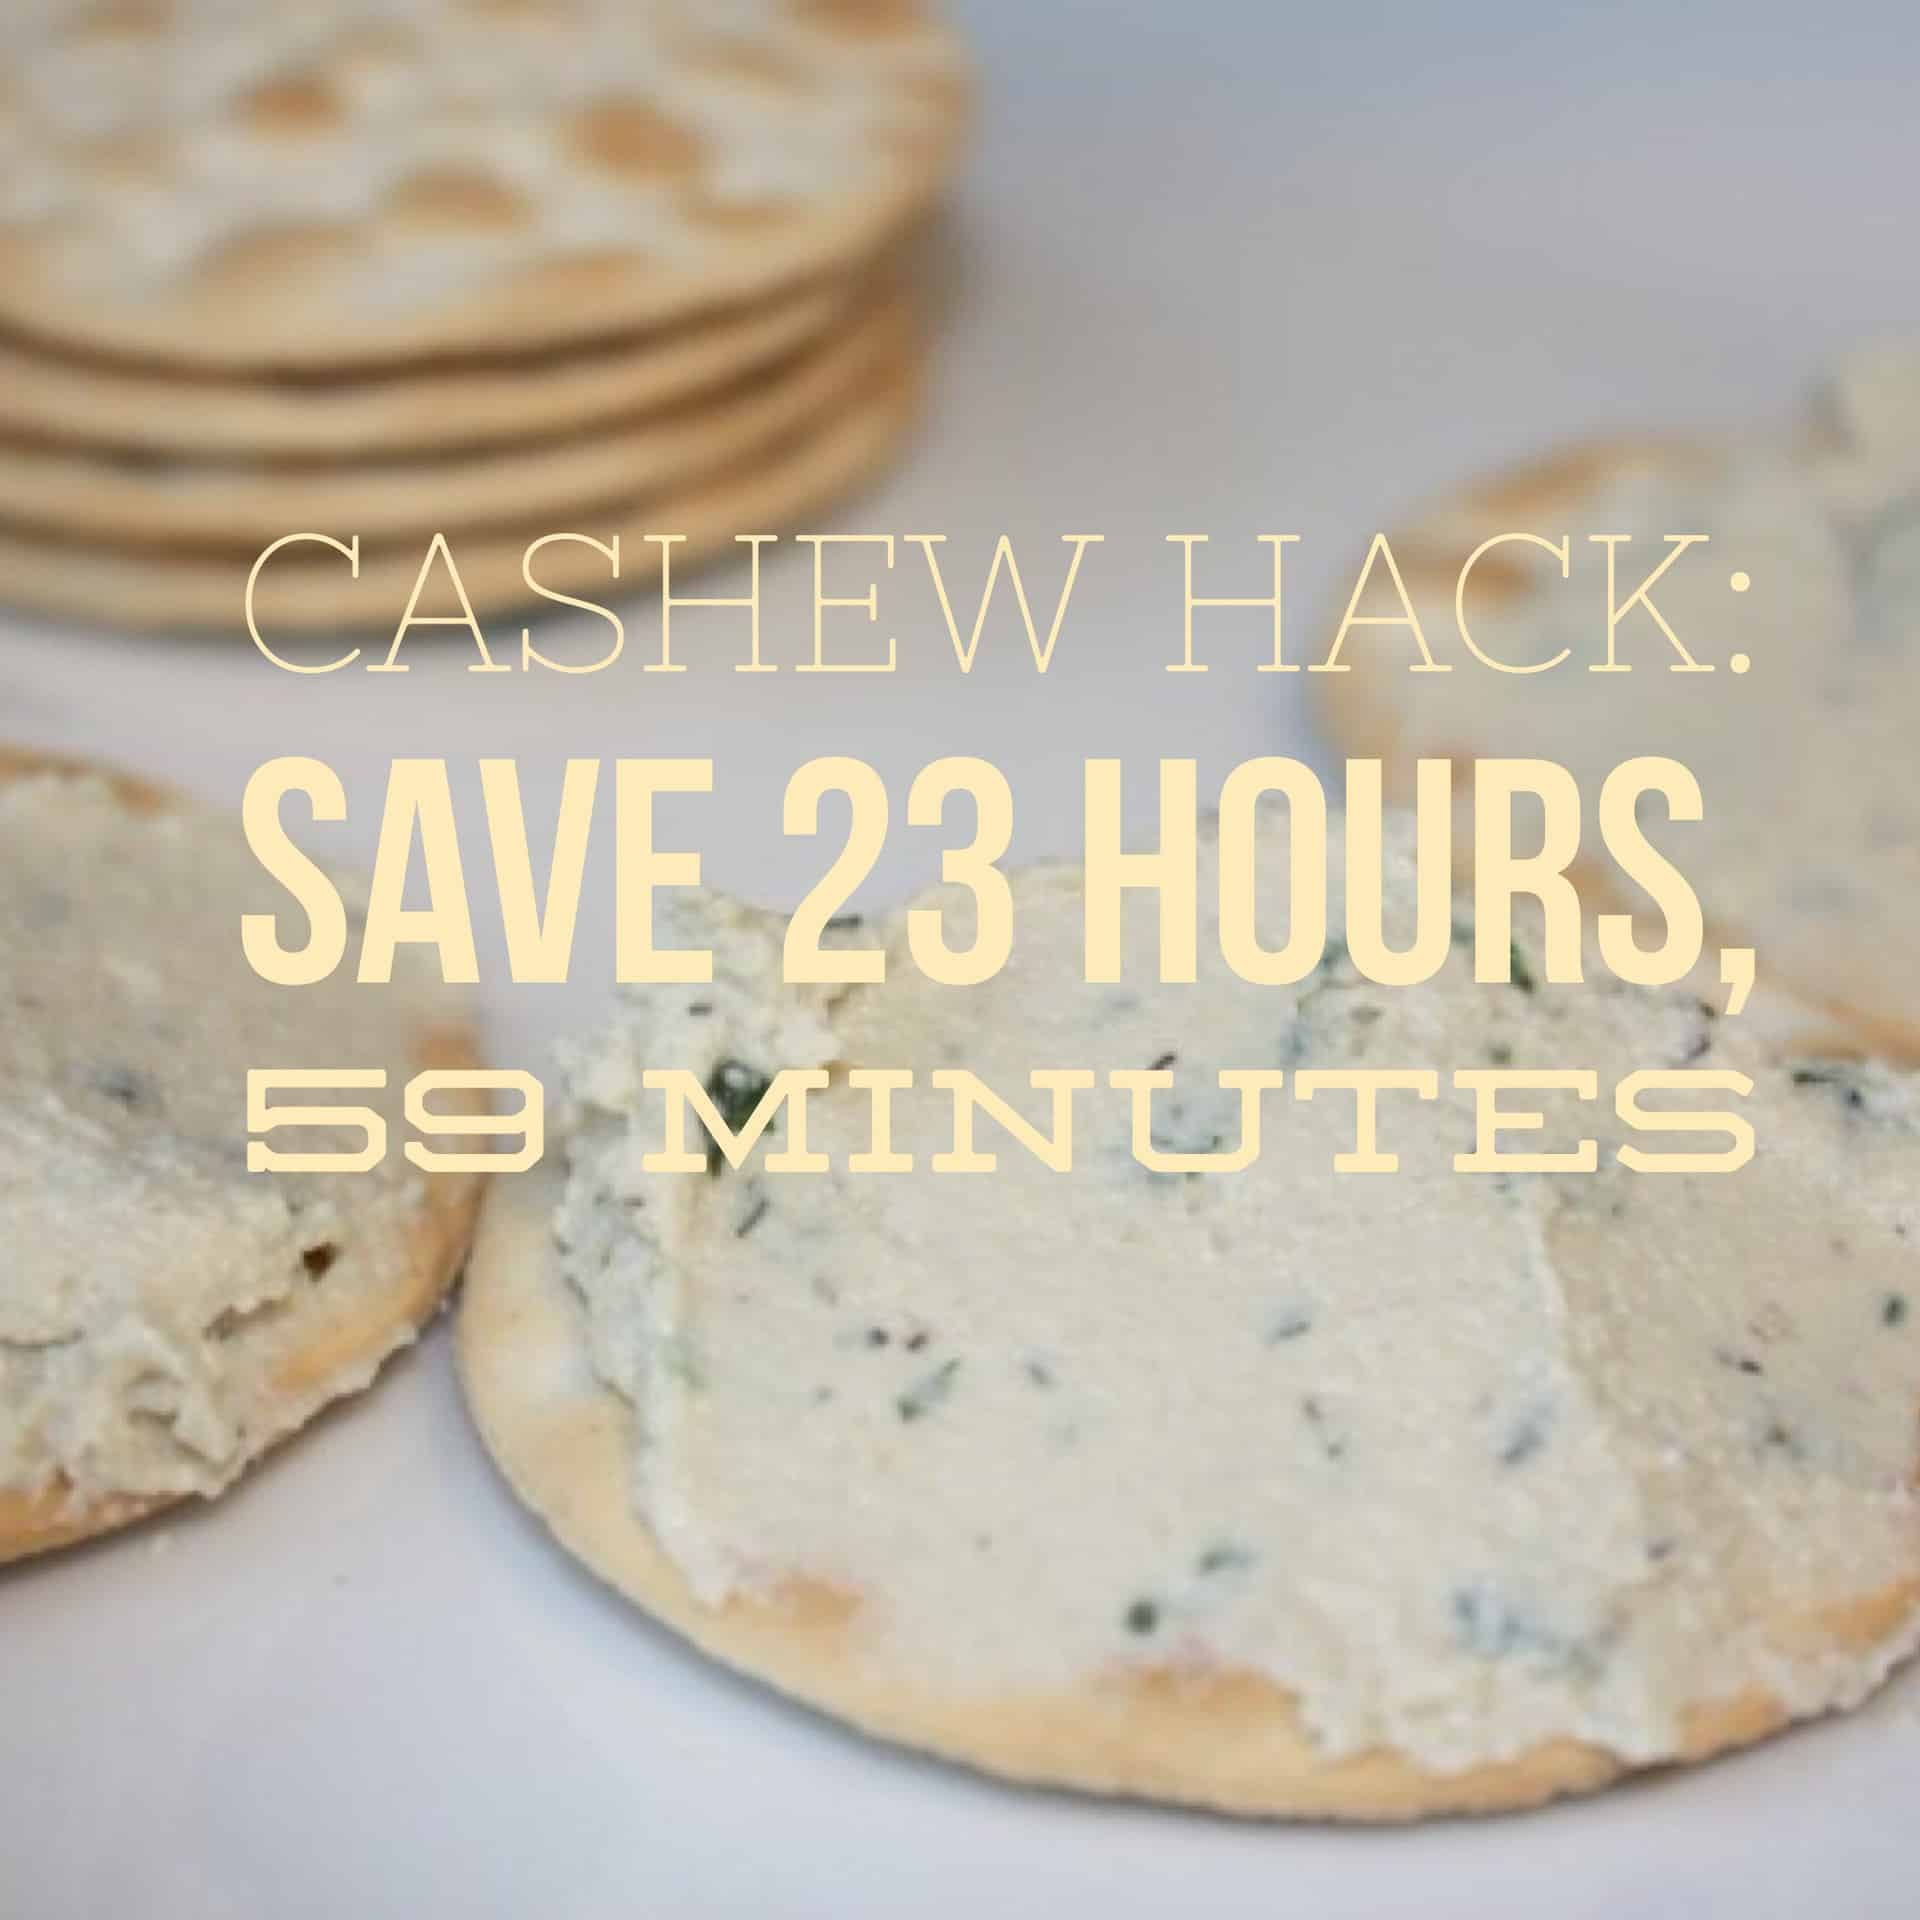 Cashew hack: save 23 hours, 59 minutes